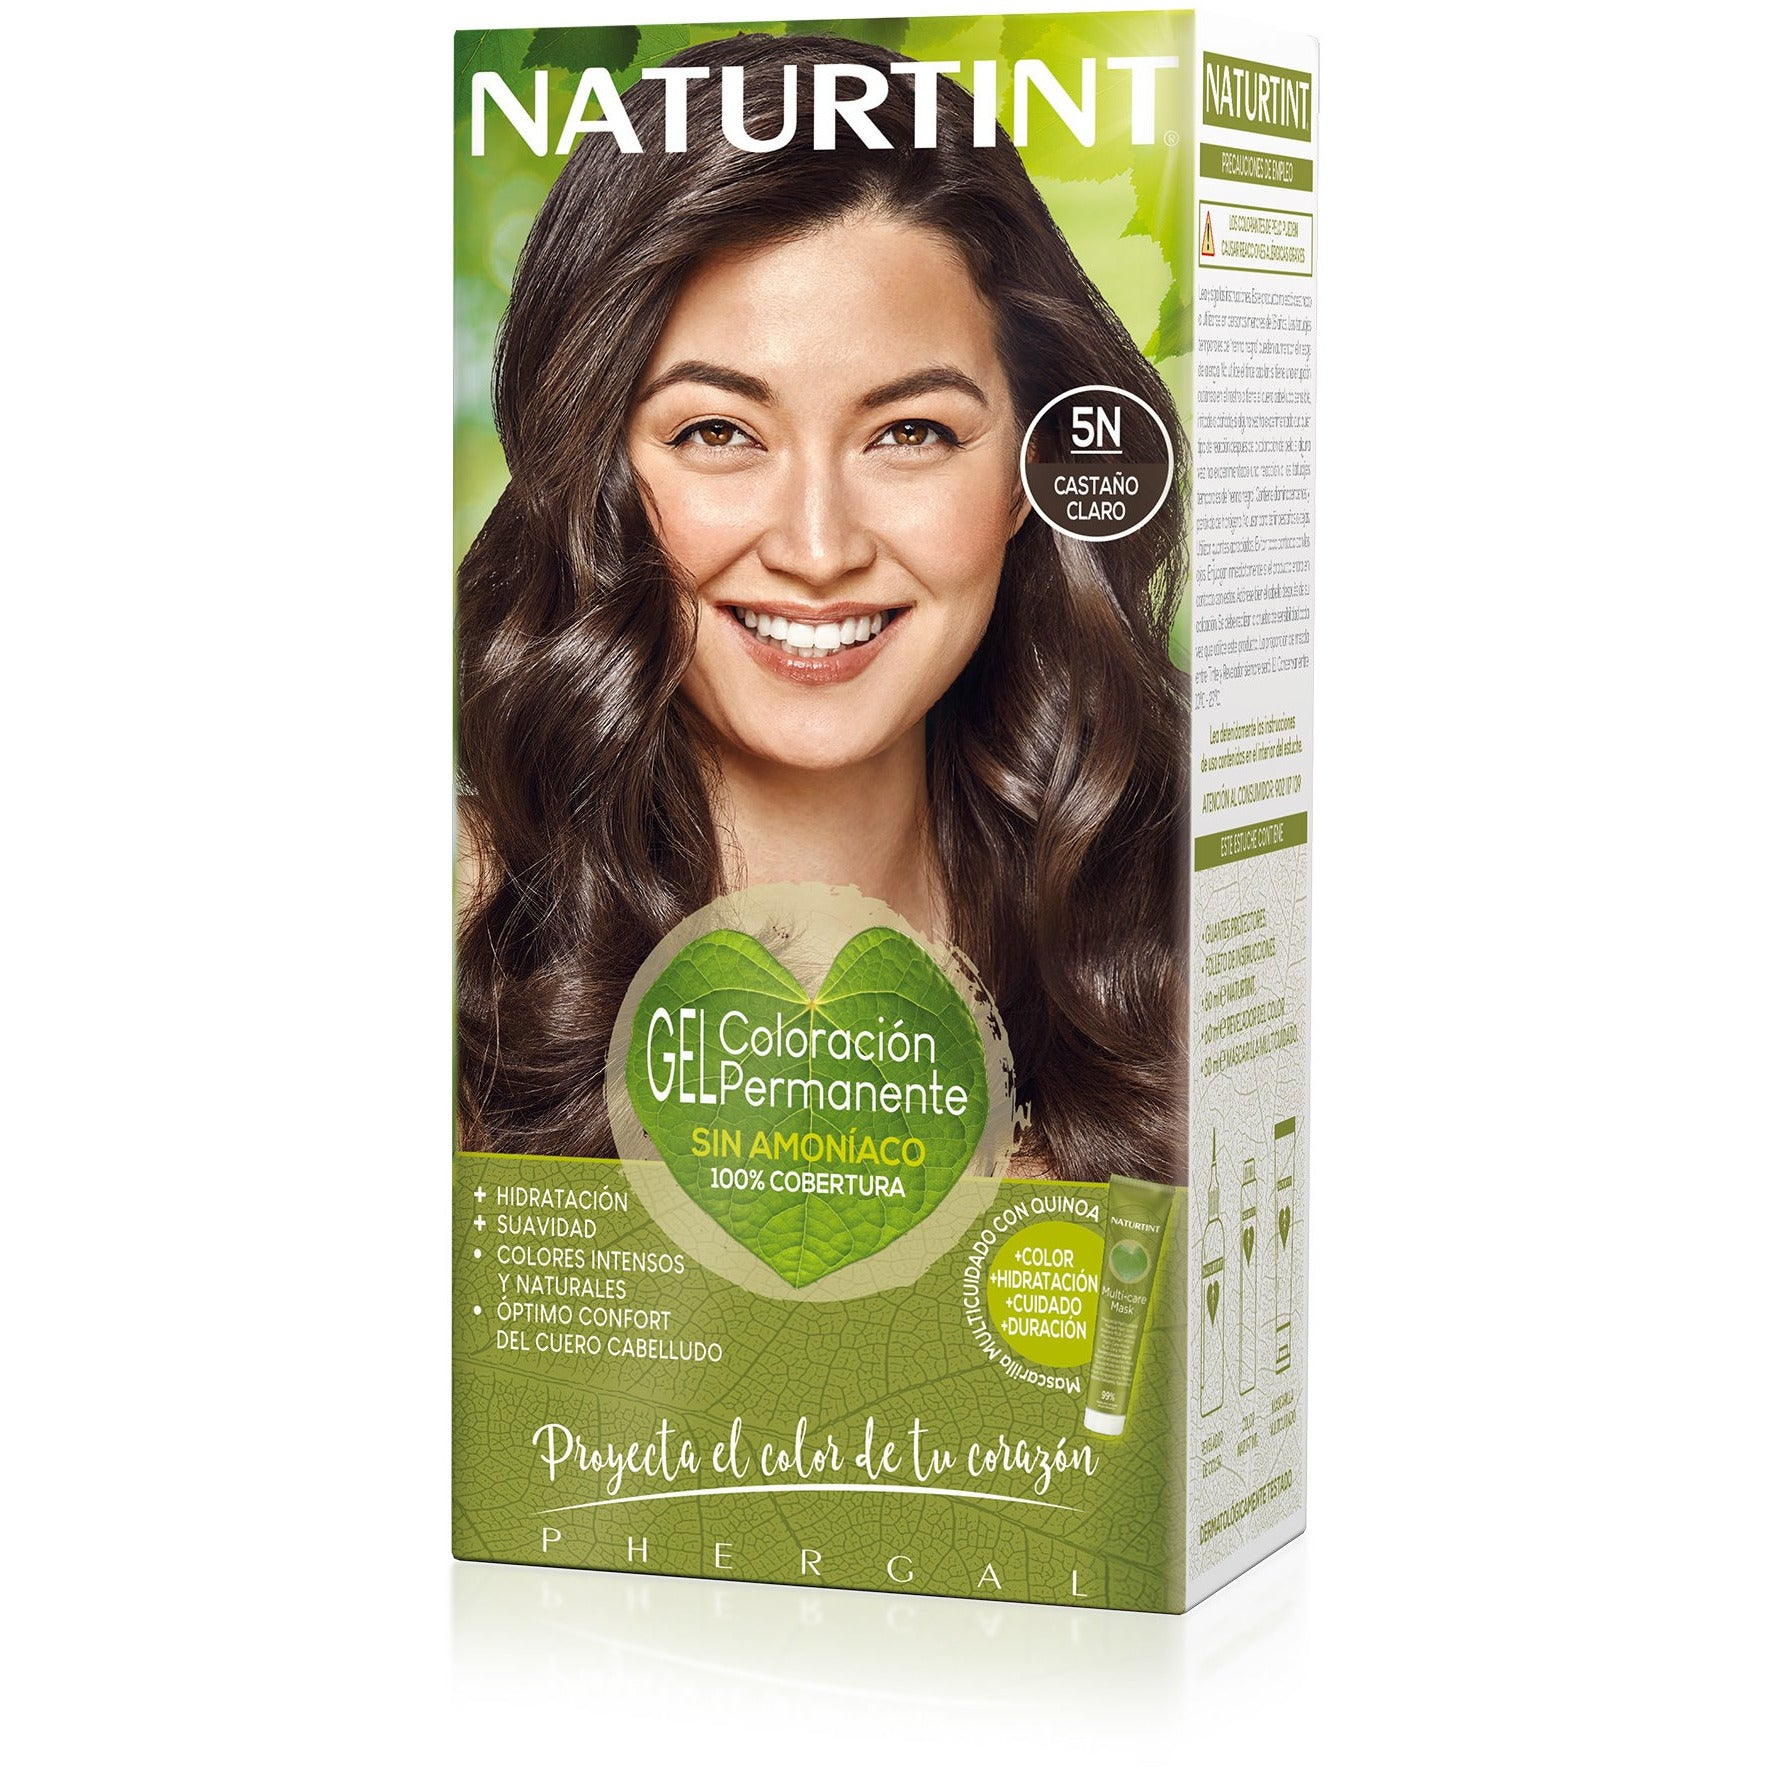 Naturtint 5N Light Chestnut Brown - iwellnessbox